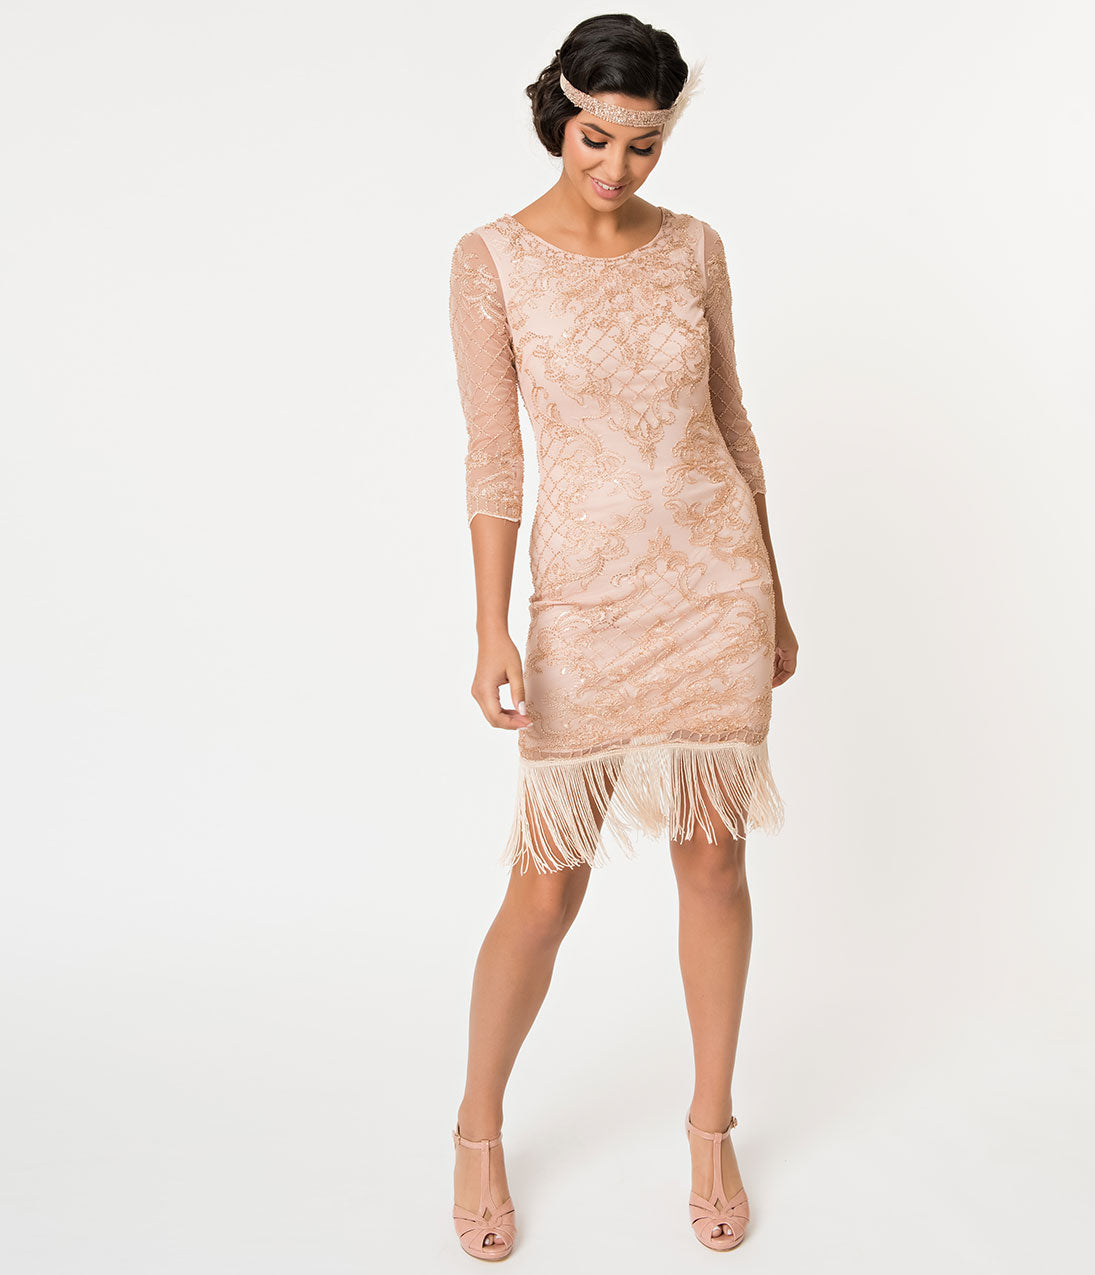 1920s Costumes: Flapper, Great Gatsby, Gangster Girl 1920S Style Rose Pink  Gold Beaded Sleeved Fringe Flapper Dress $110.00 AT vintagedancer.com